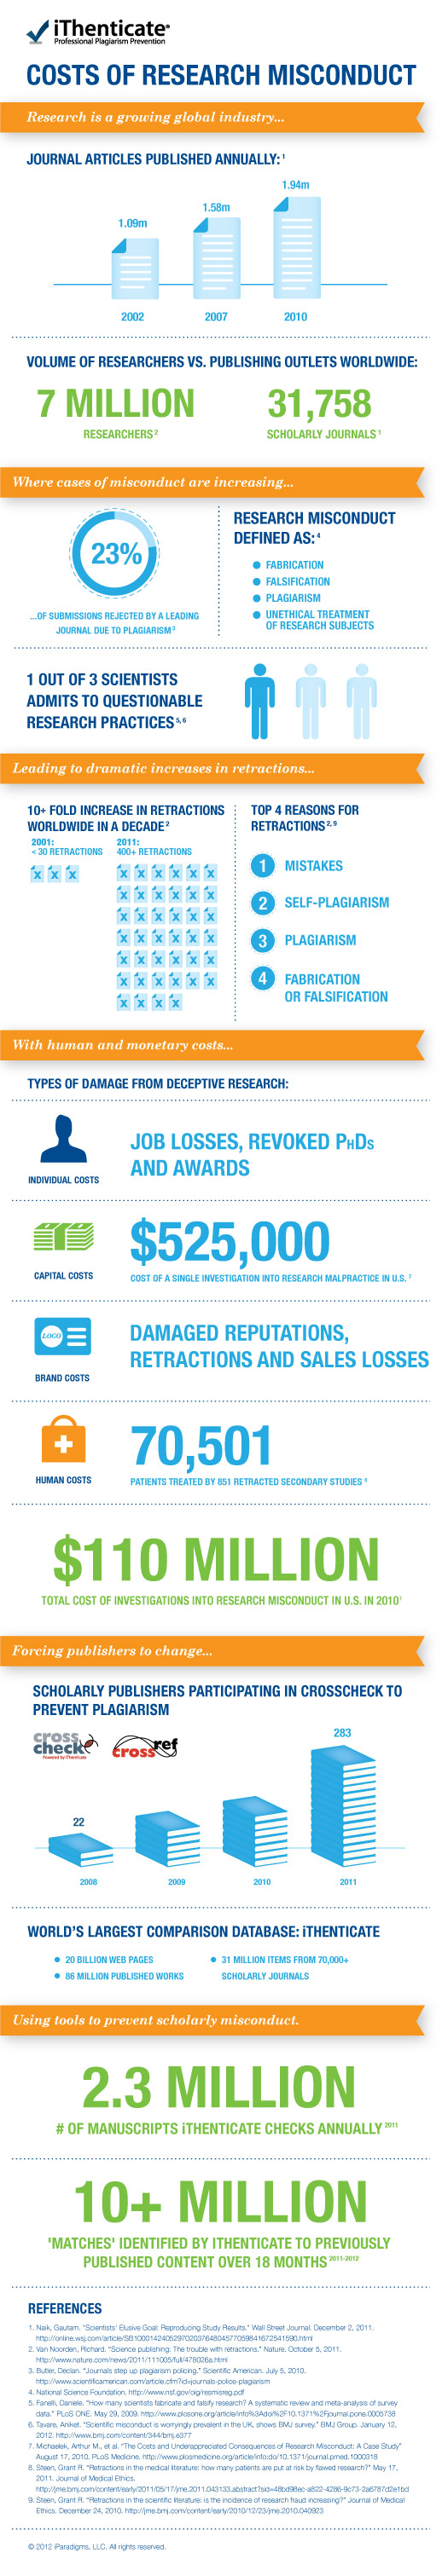 iThenticate Research Misconduct Infographic